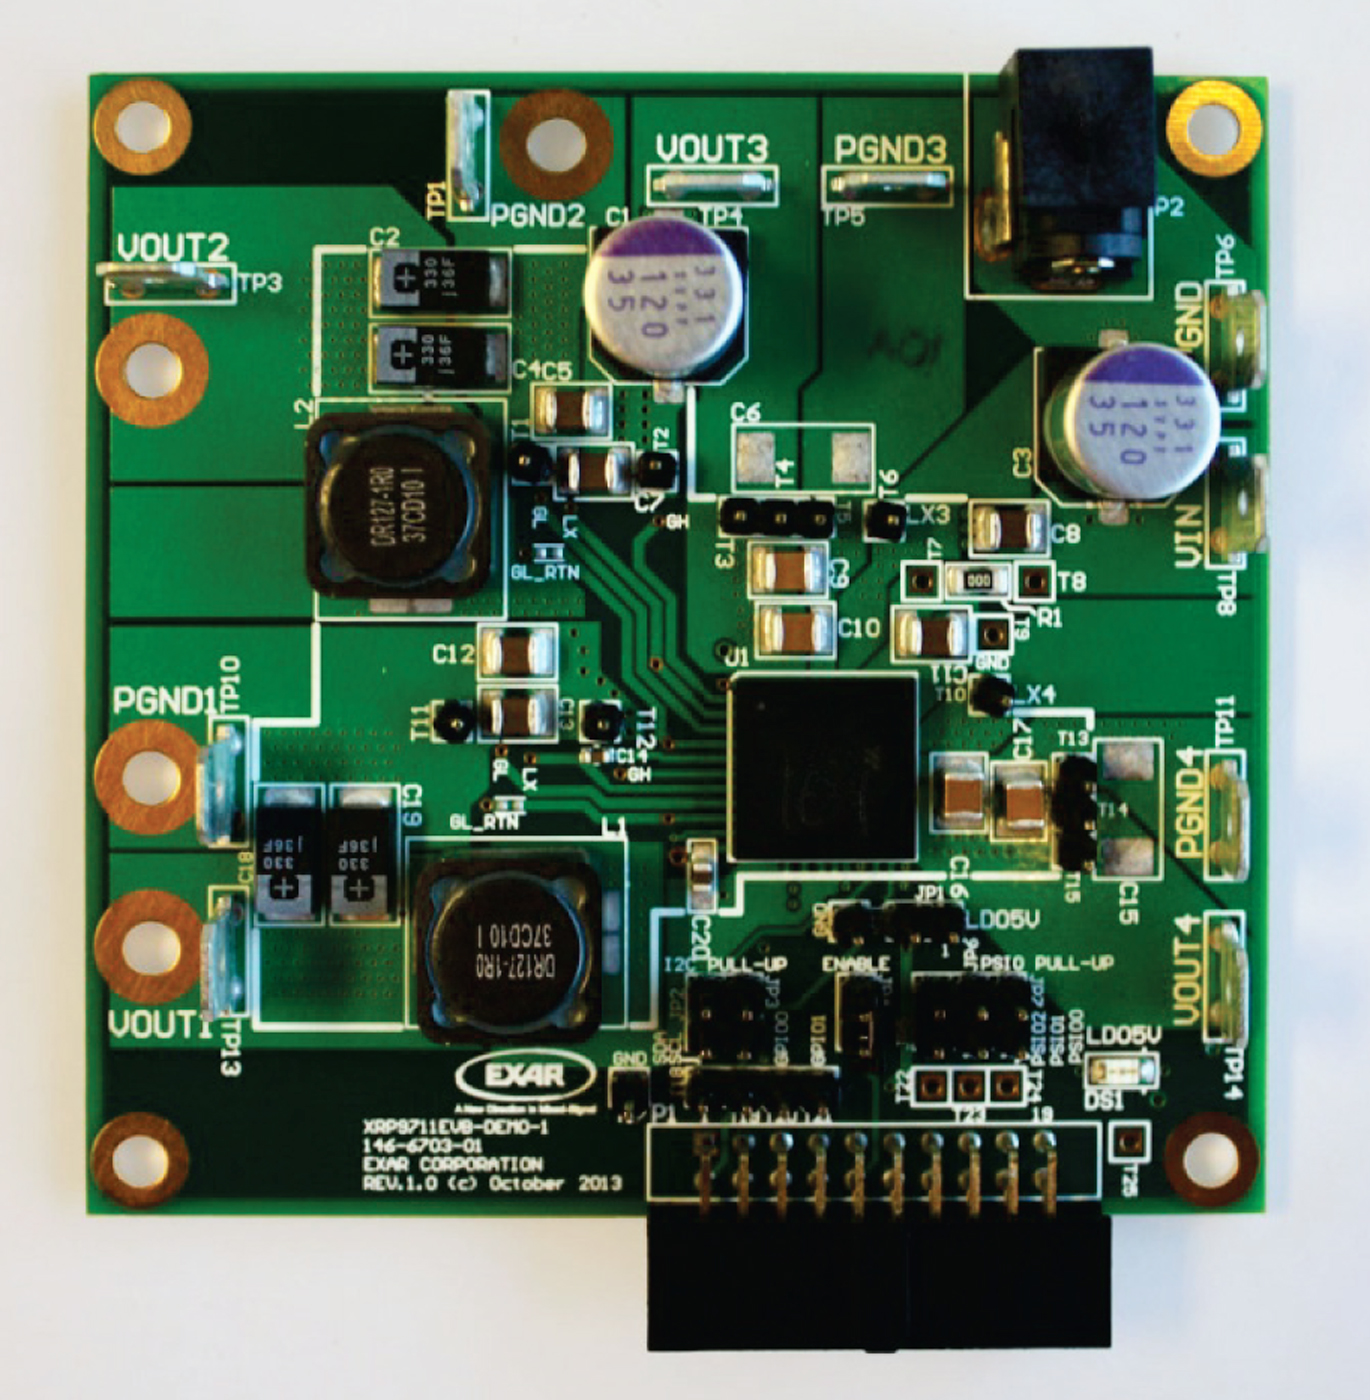 Quad Channel Digital PWM/PFM Programmable Power Management System Demo Board